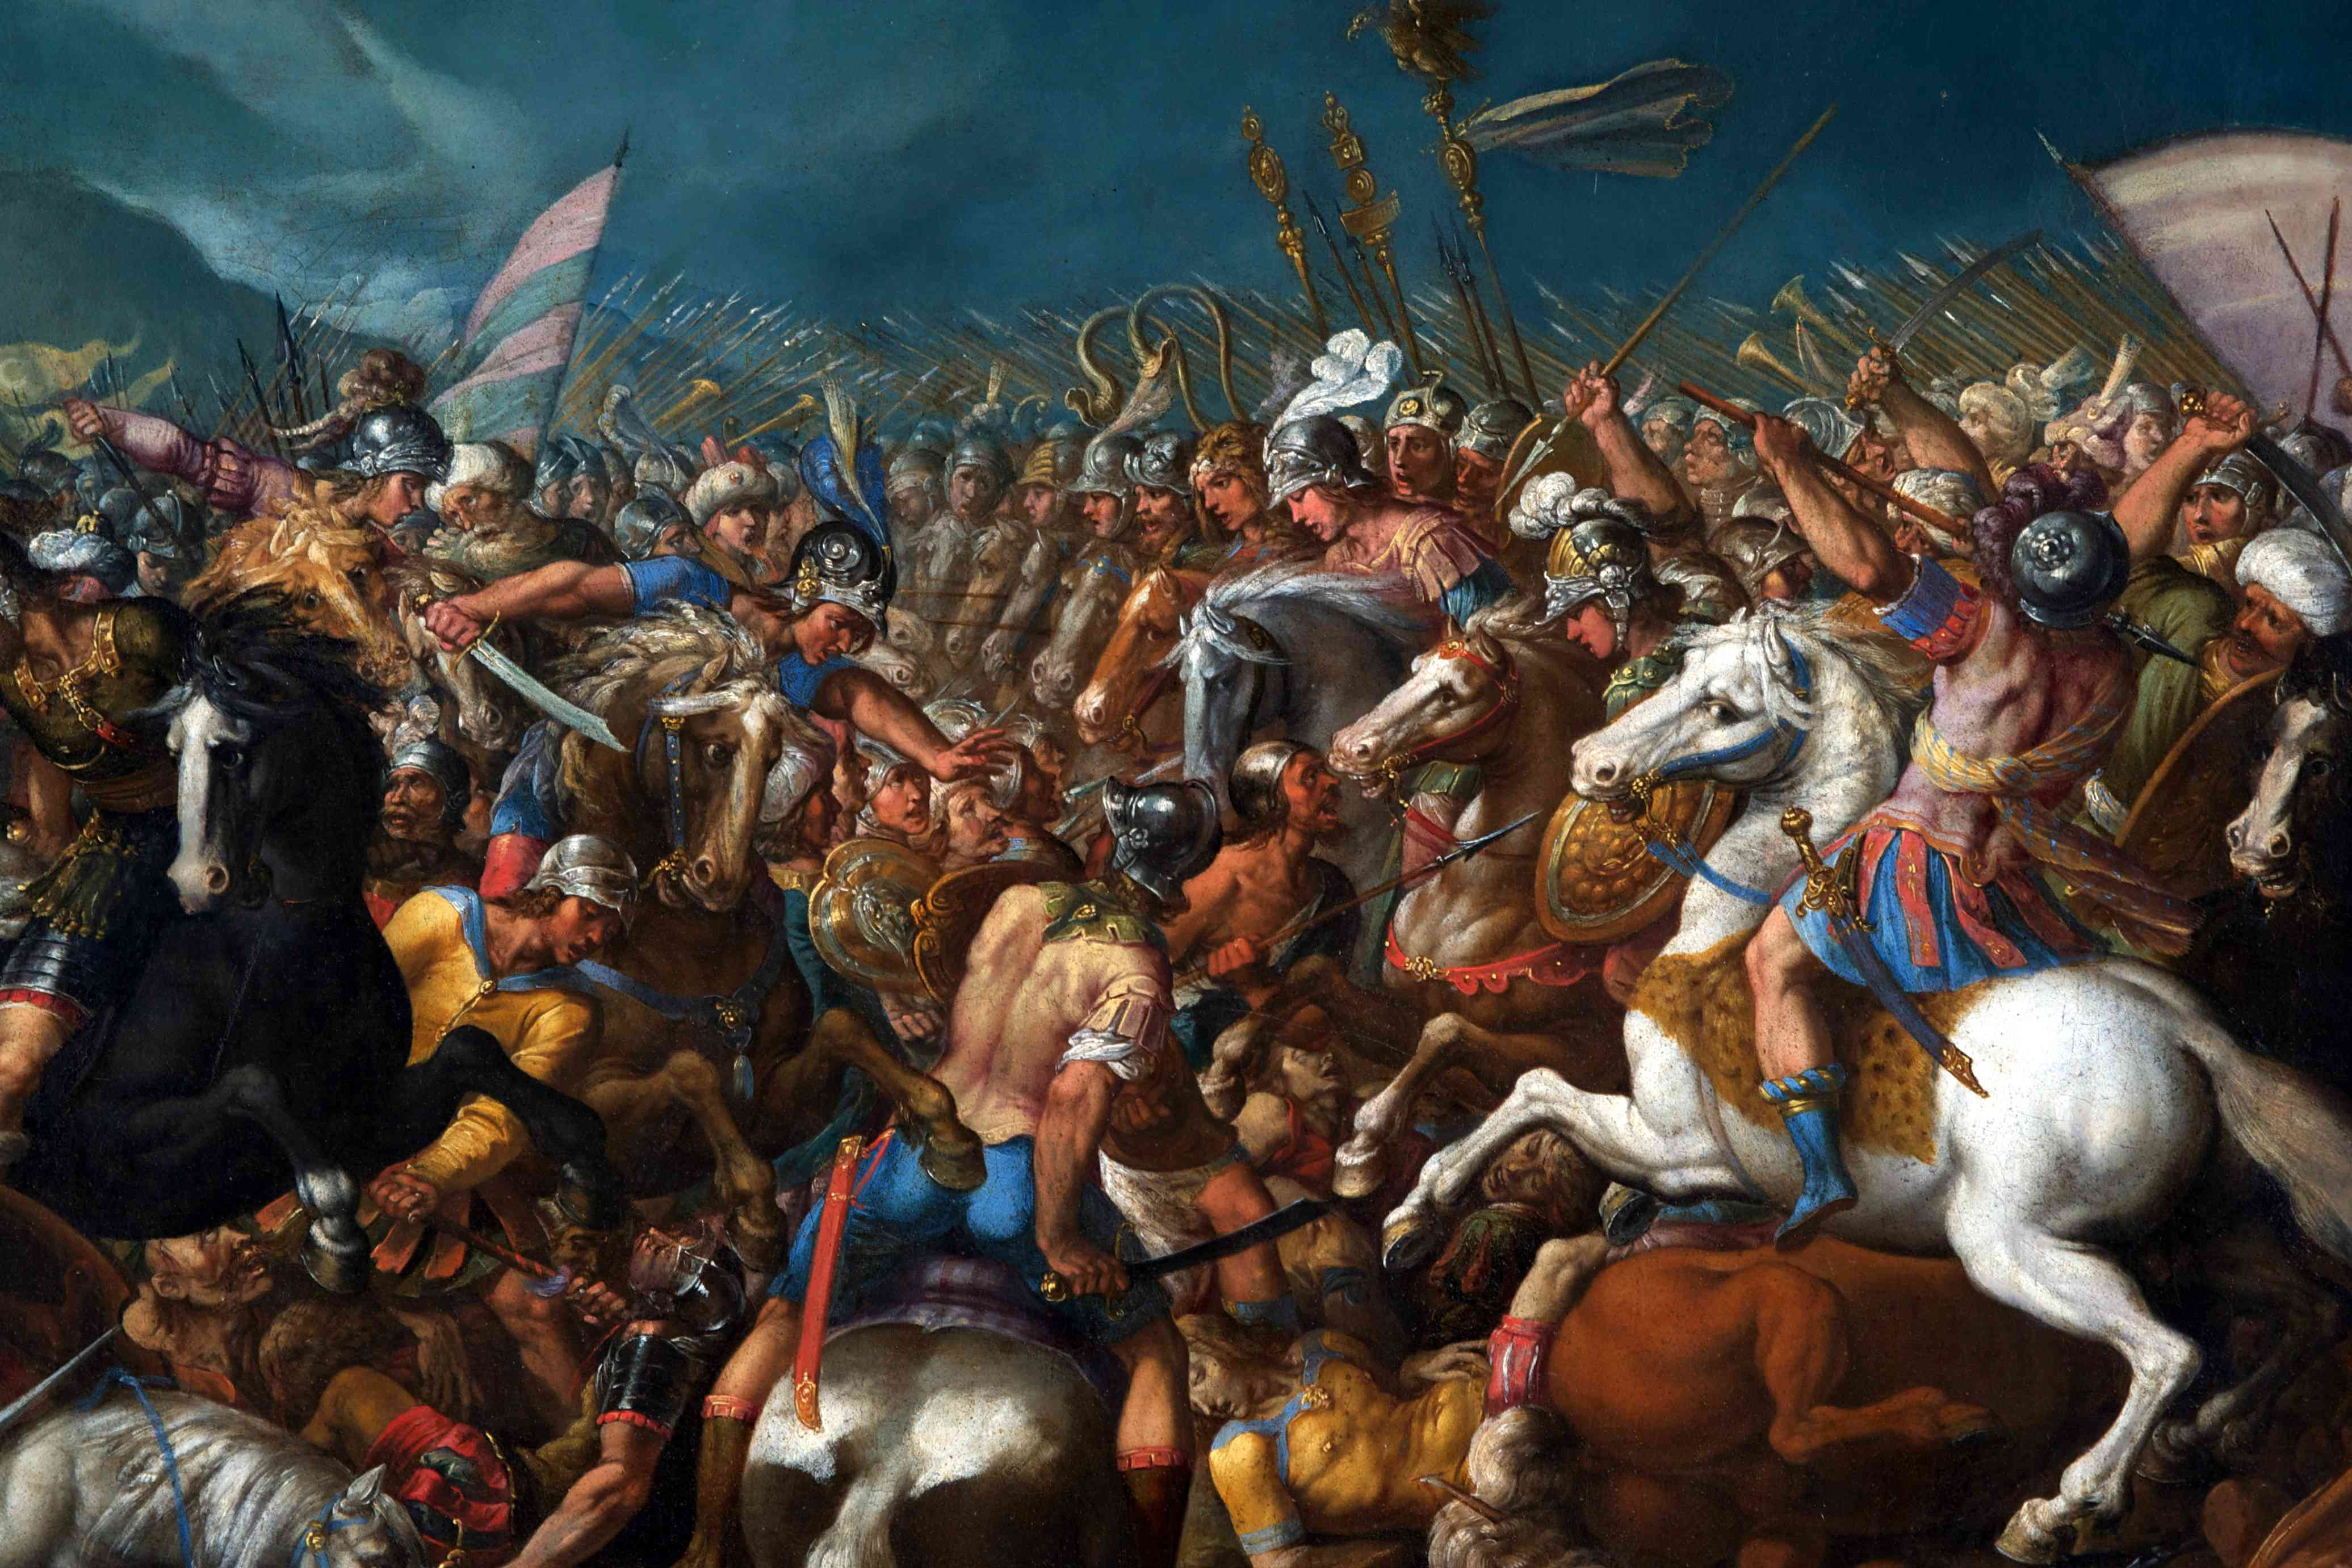 The fight between Scipio Africanus and Hannibal shows cavalry clashing